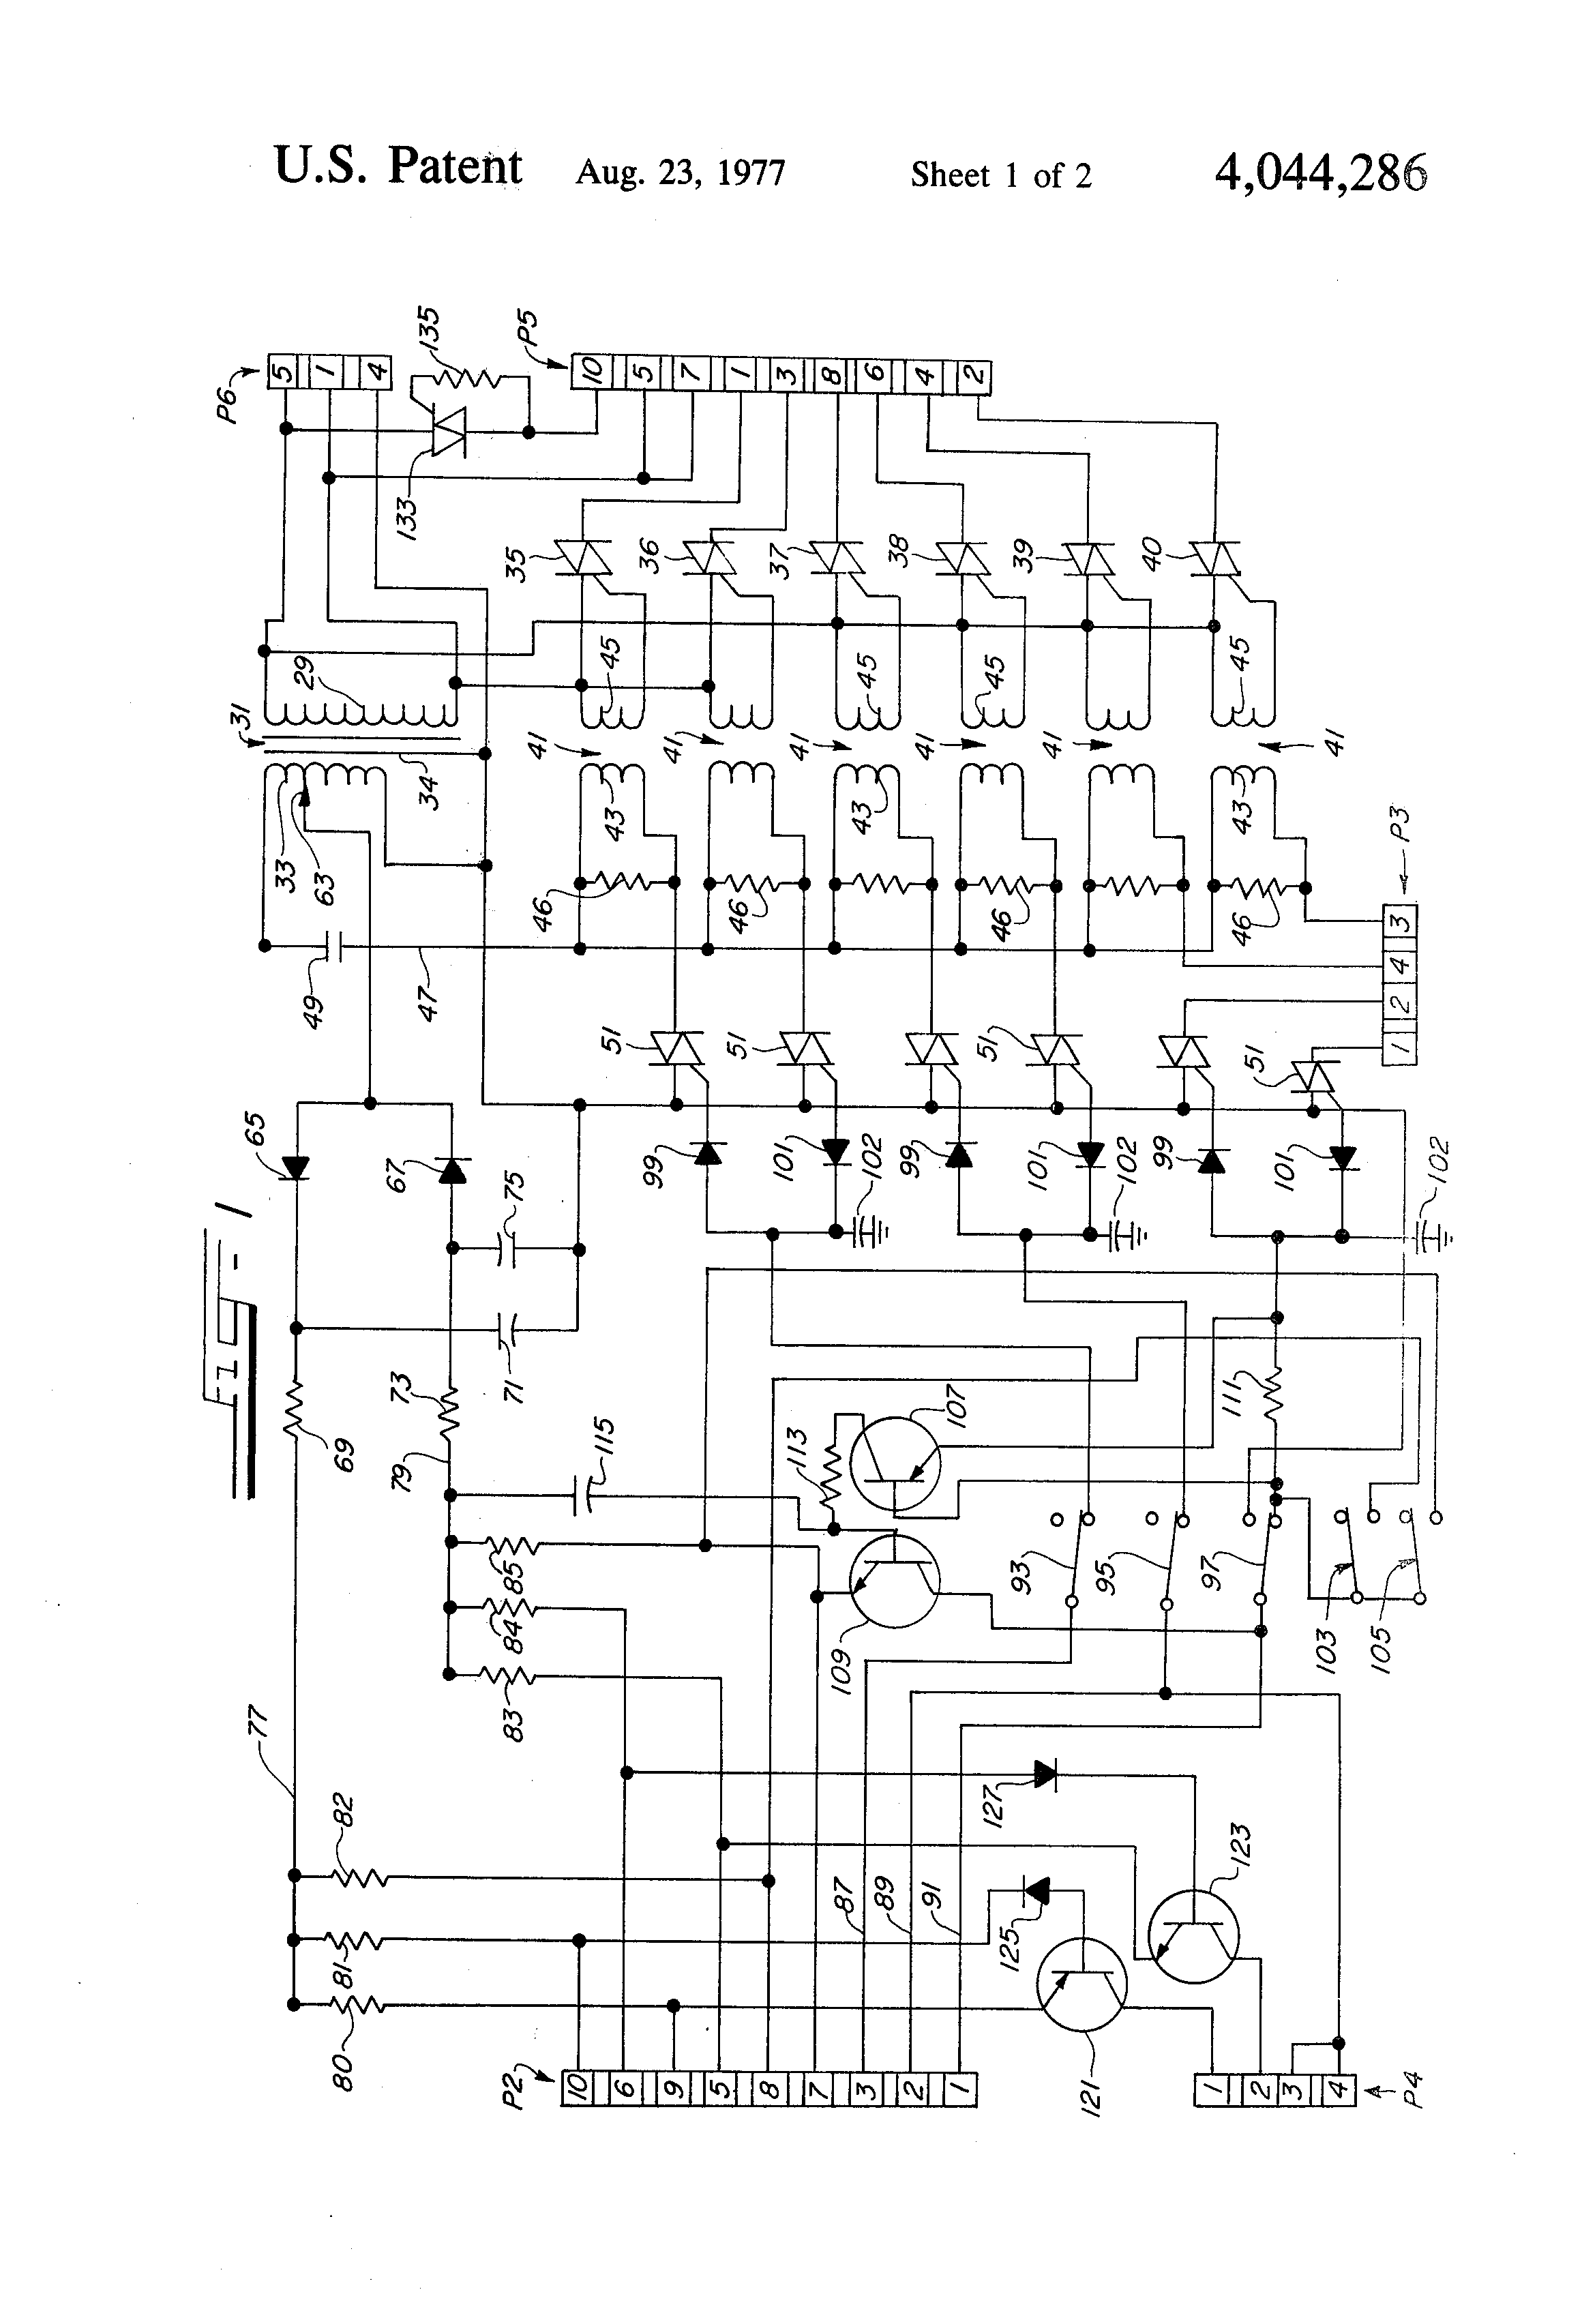 US4044286 1 hospital bed wiring diagram wiring diagram and schematic design wiring diagram for cm truck bed at aneh.co